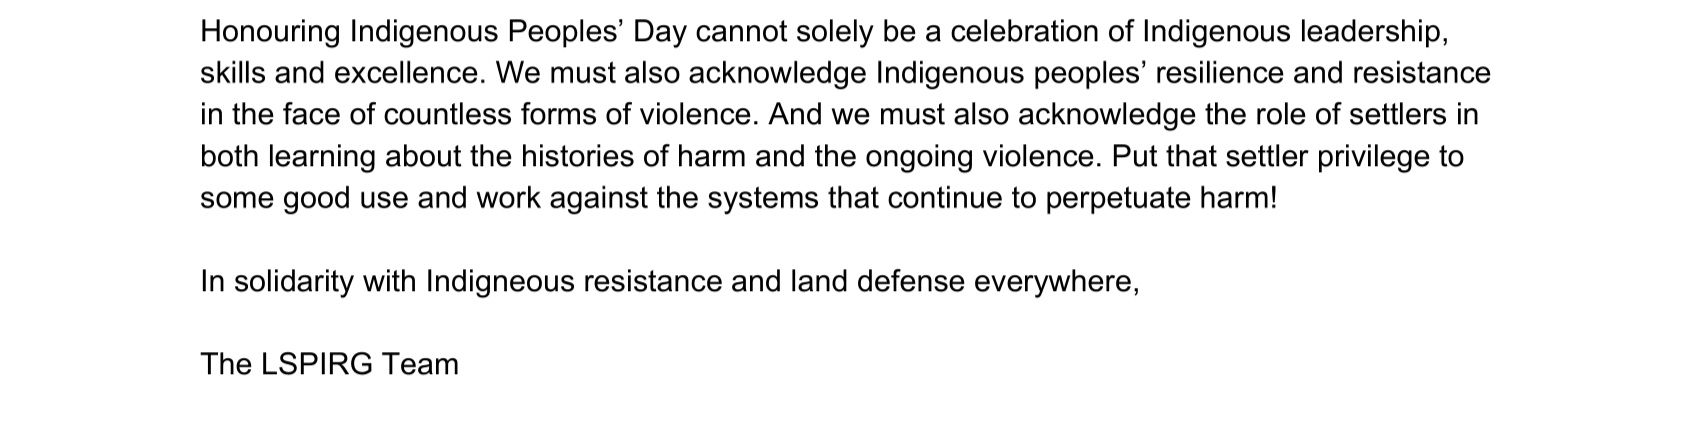 Indigenous Peoples' Day Statement-2.png